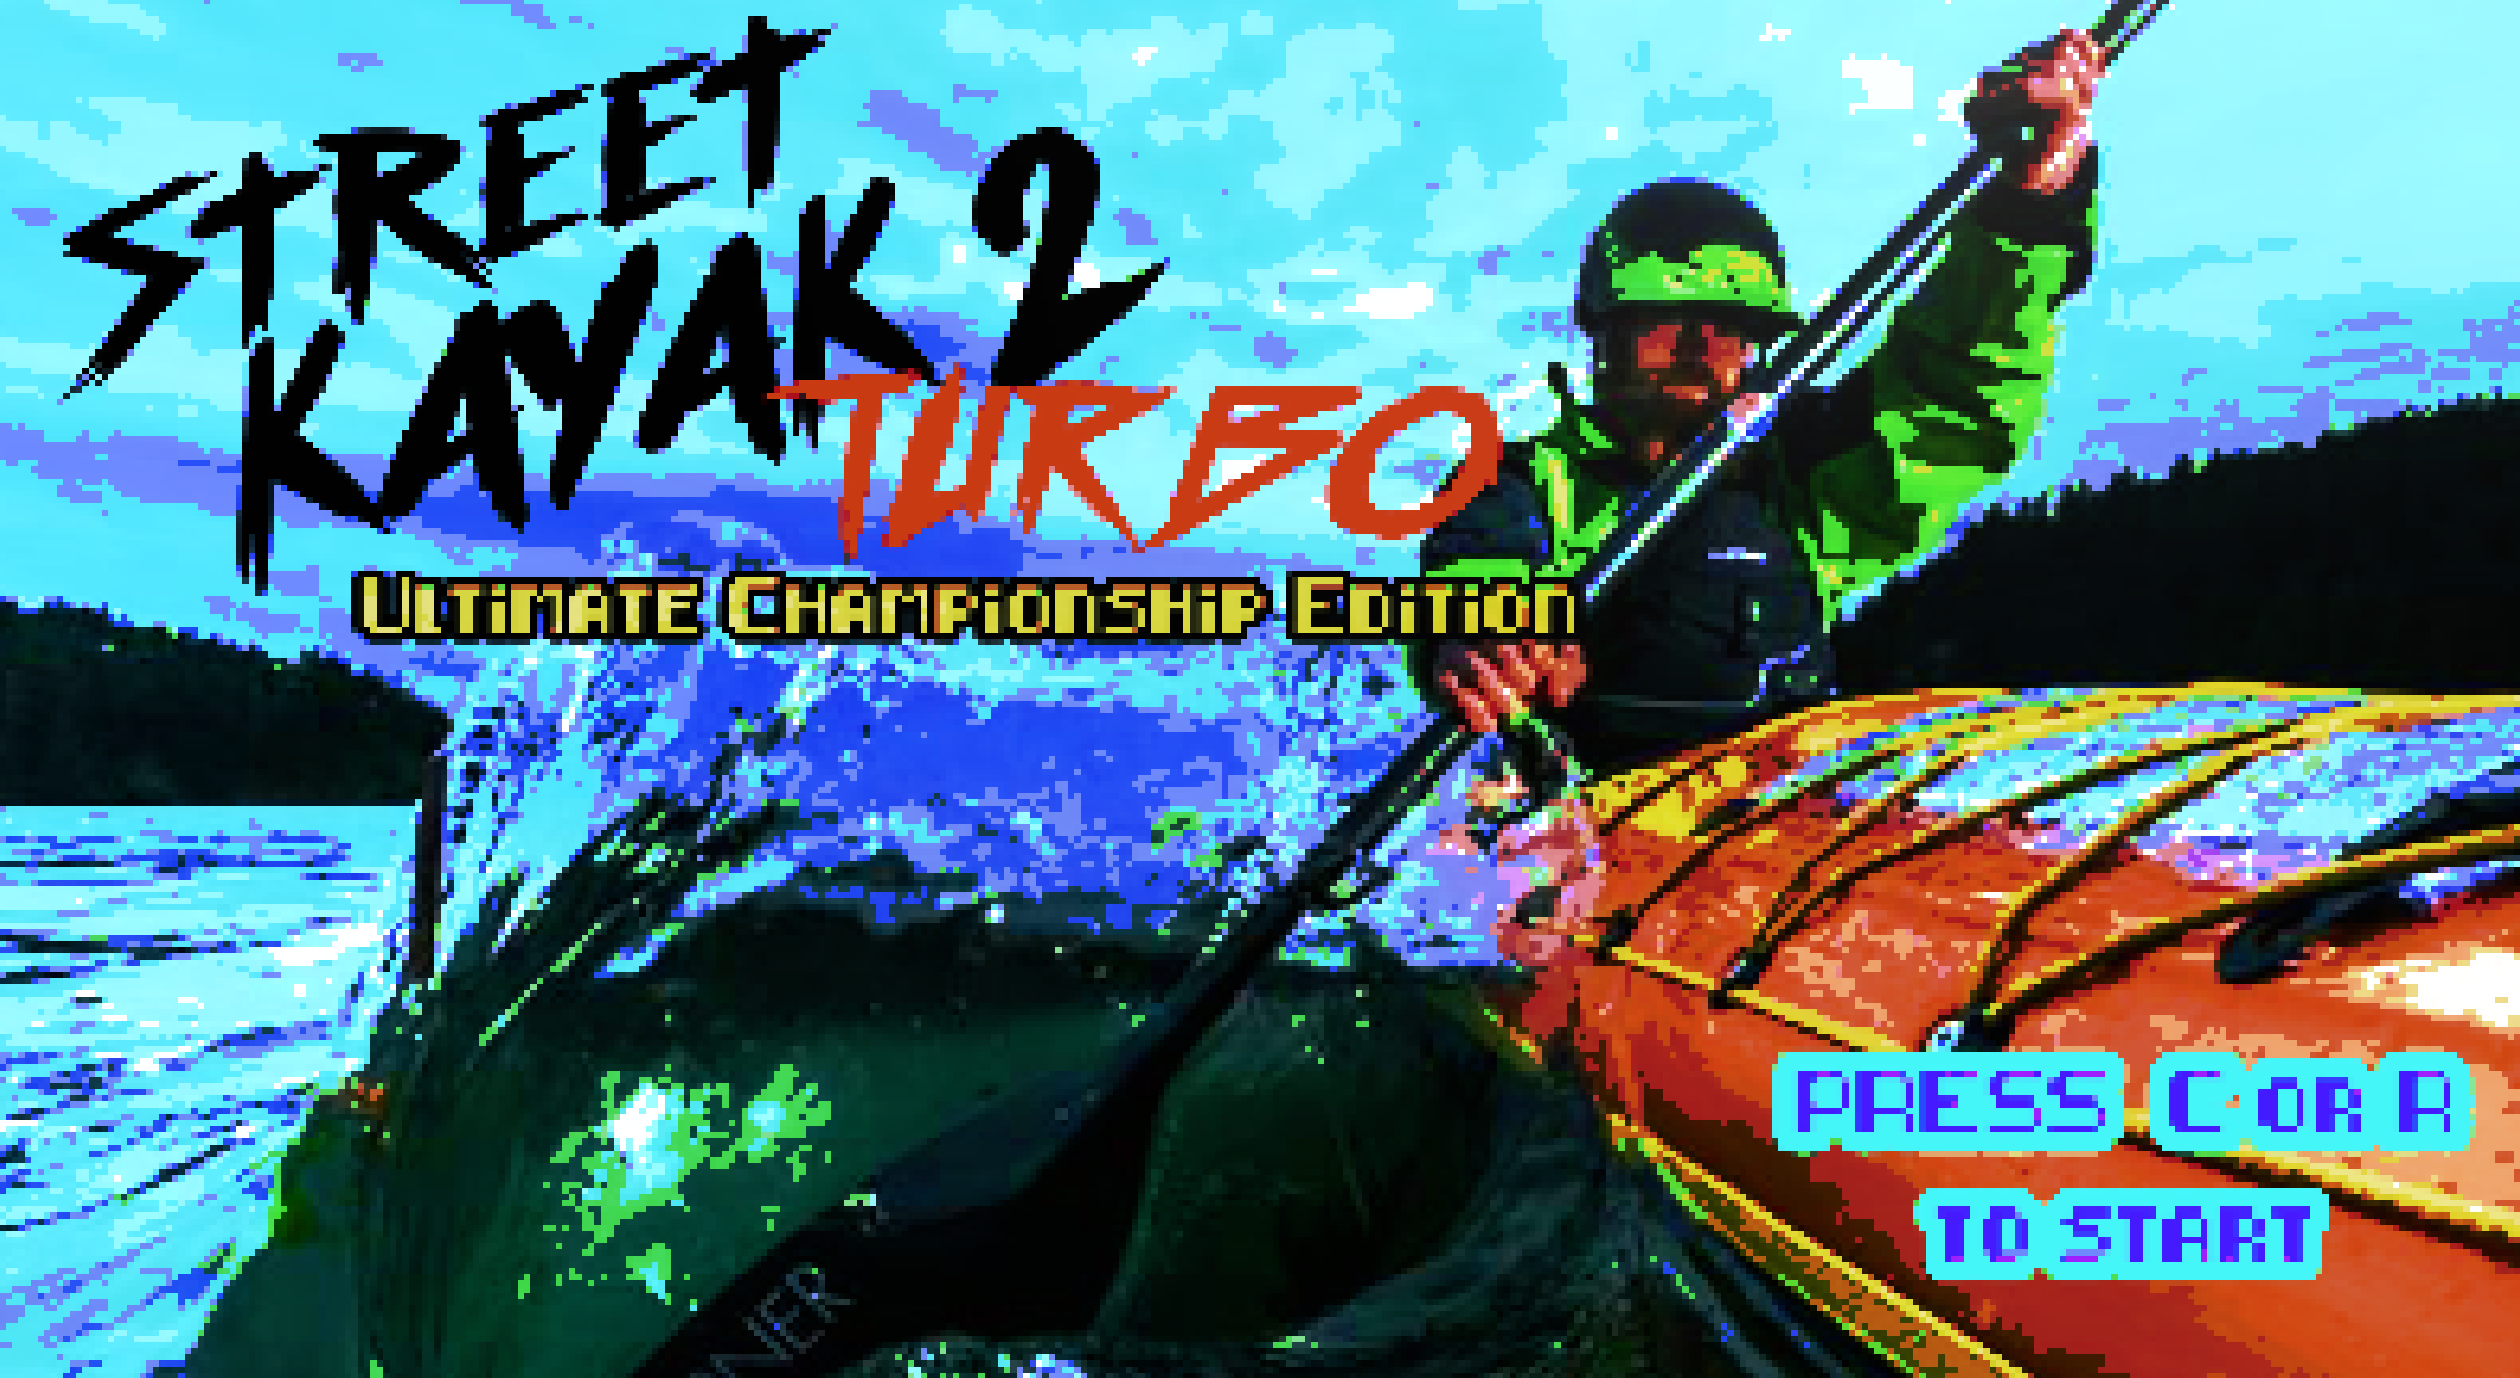 Street Kayak 2 Turbo Ultimate Championship Edition